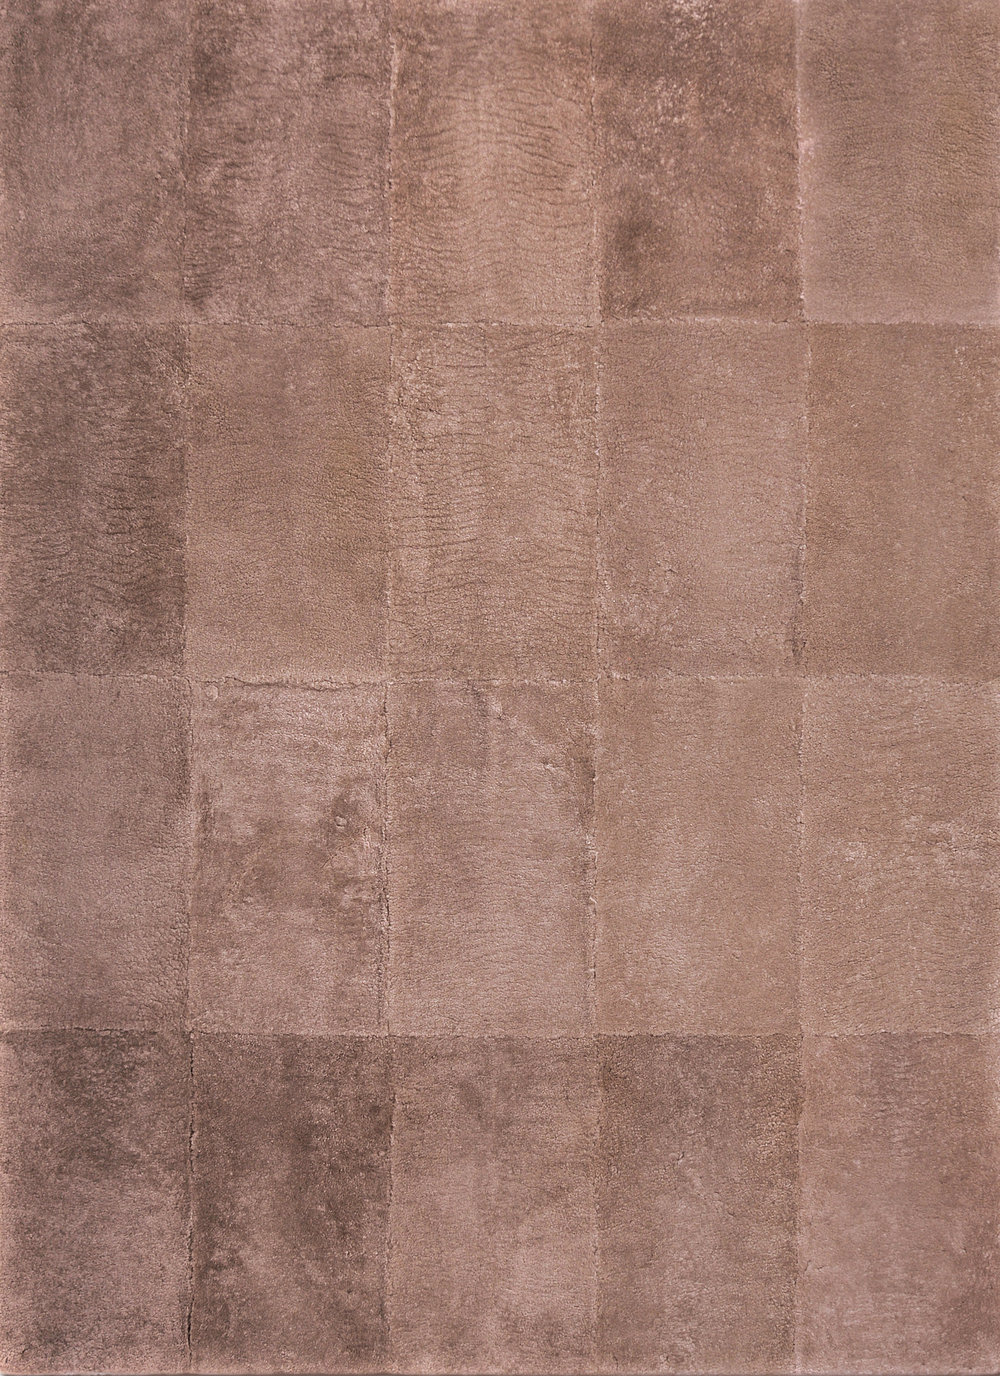 MELANGE I LIGHT TAUPE